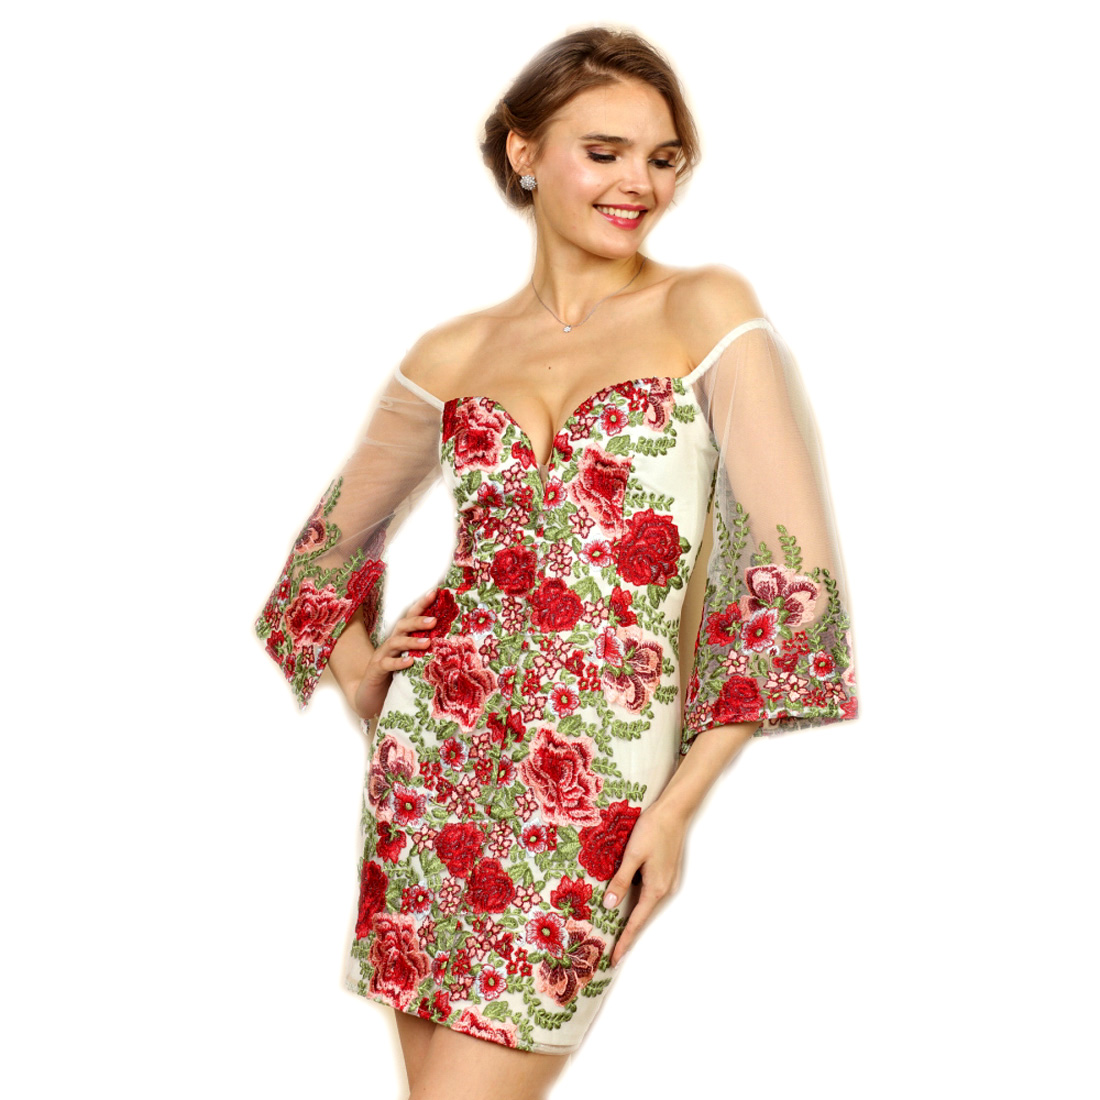 d54b249246a8 Soieblu, Ivory & Red Floral Embroidered Off-the-Shoulder Mini Short Dress,